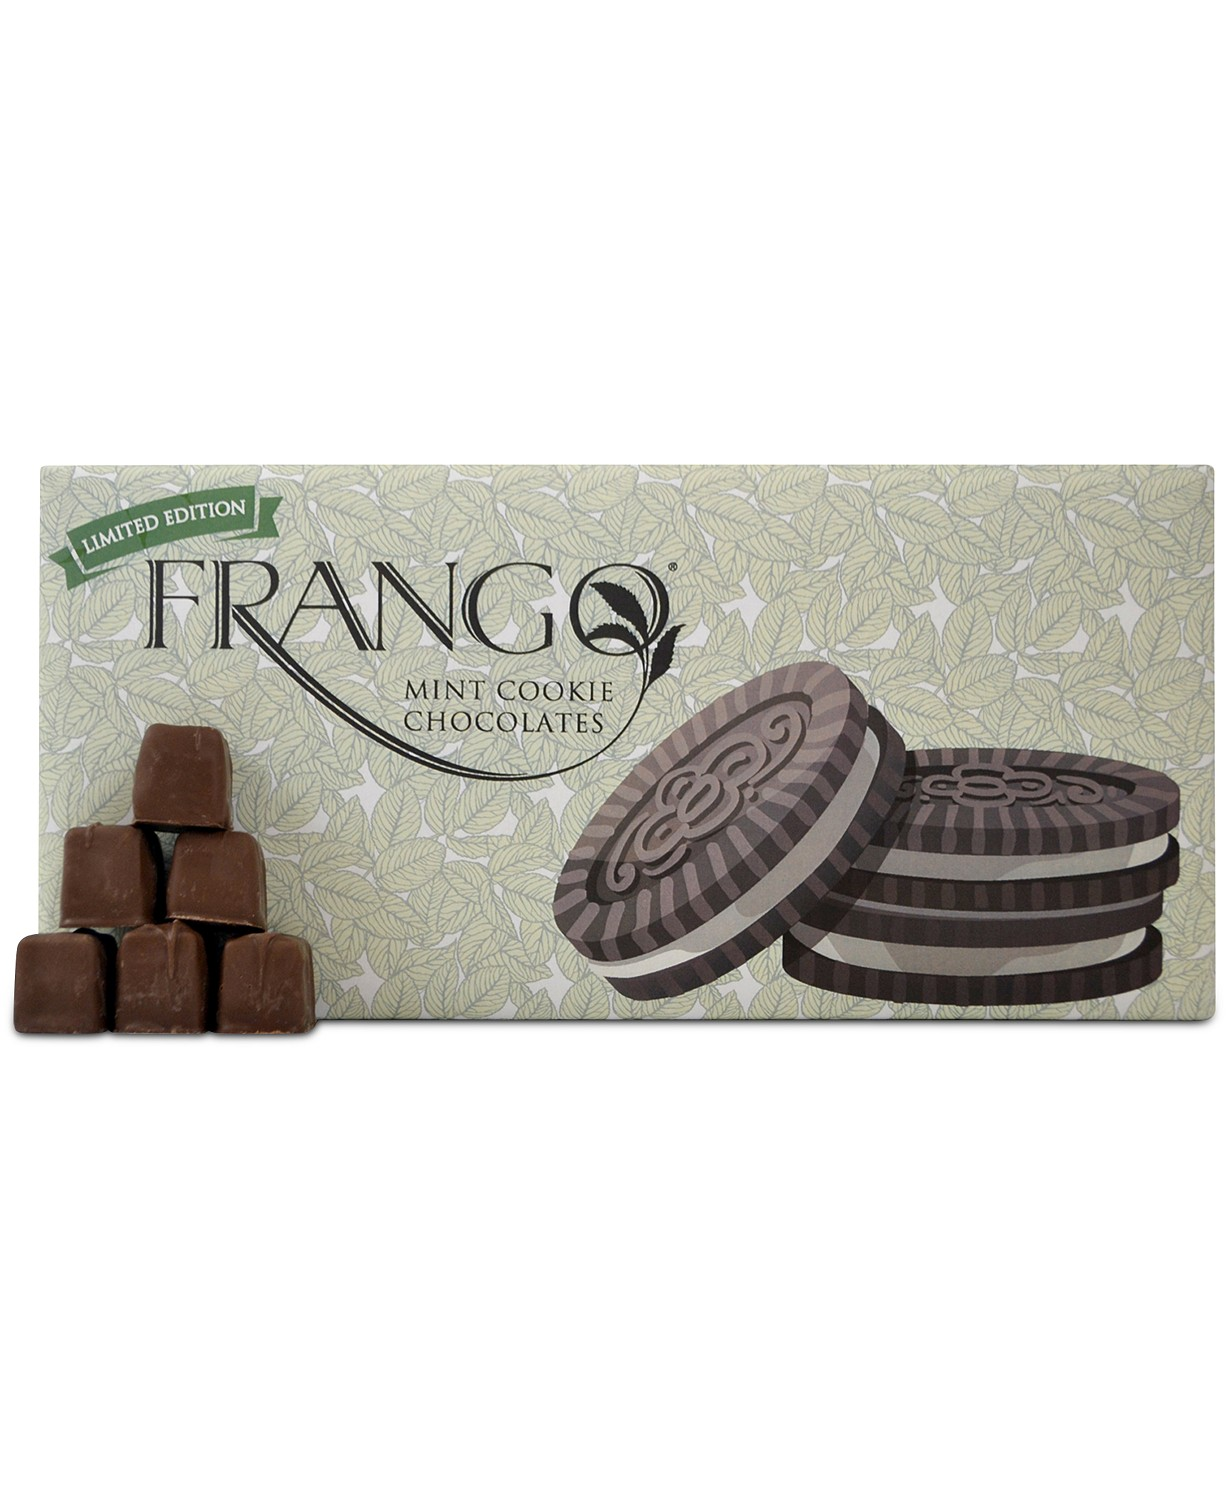 Frango Chocolates 1 LB Limited Edition Mint Cookie Box of Chocolates